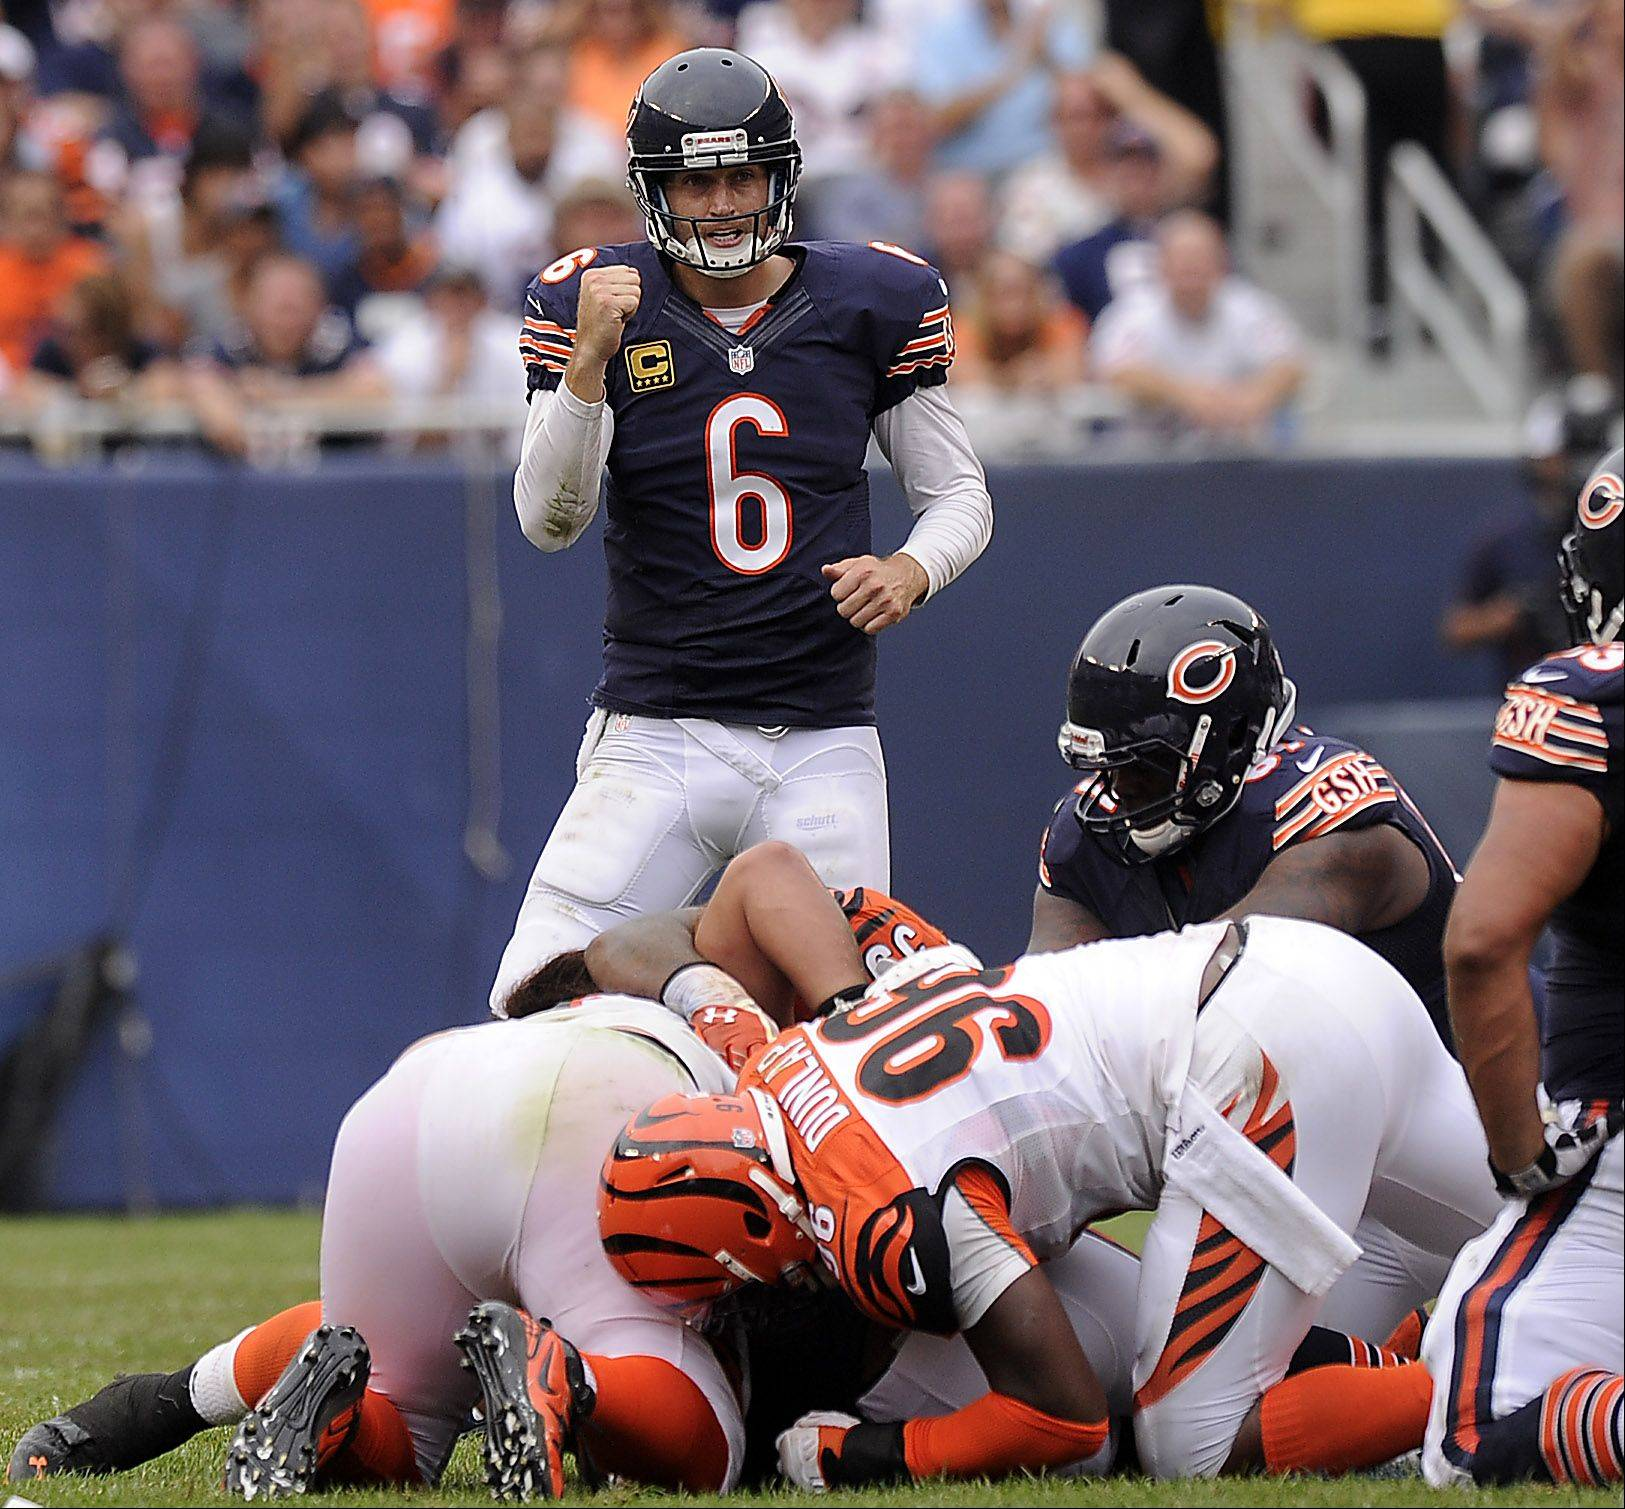 Chicago Bears Jay Cutler pumps his fist after getting a first down in the fourth quarter in the season opener against the Cincinnati Bengals at Soldier Field.